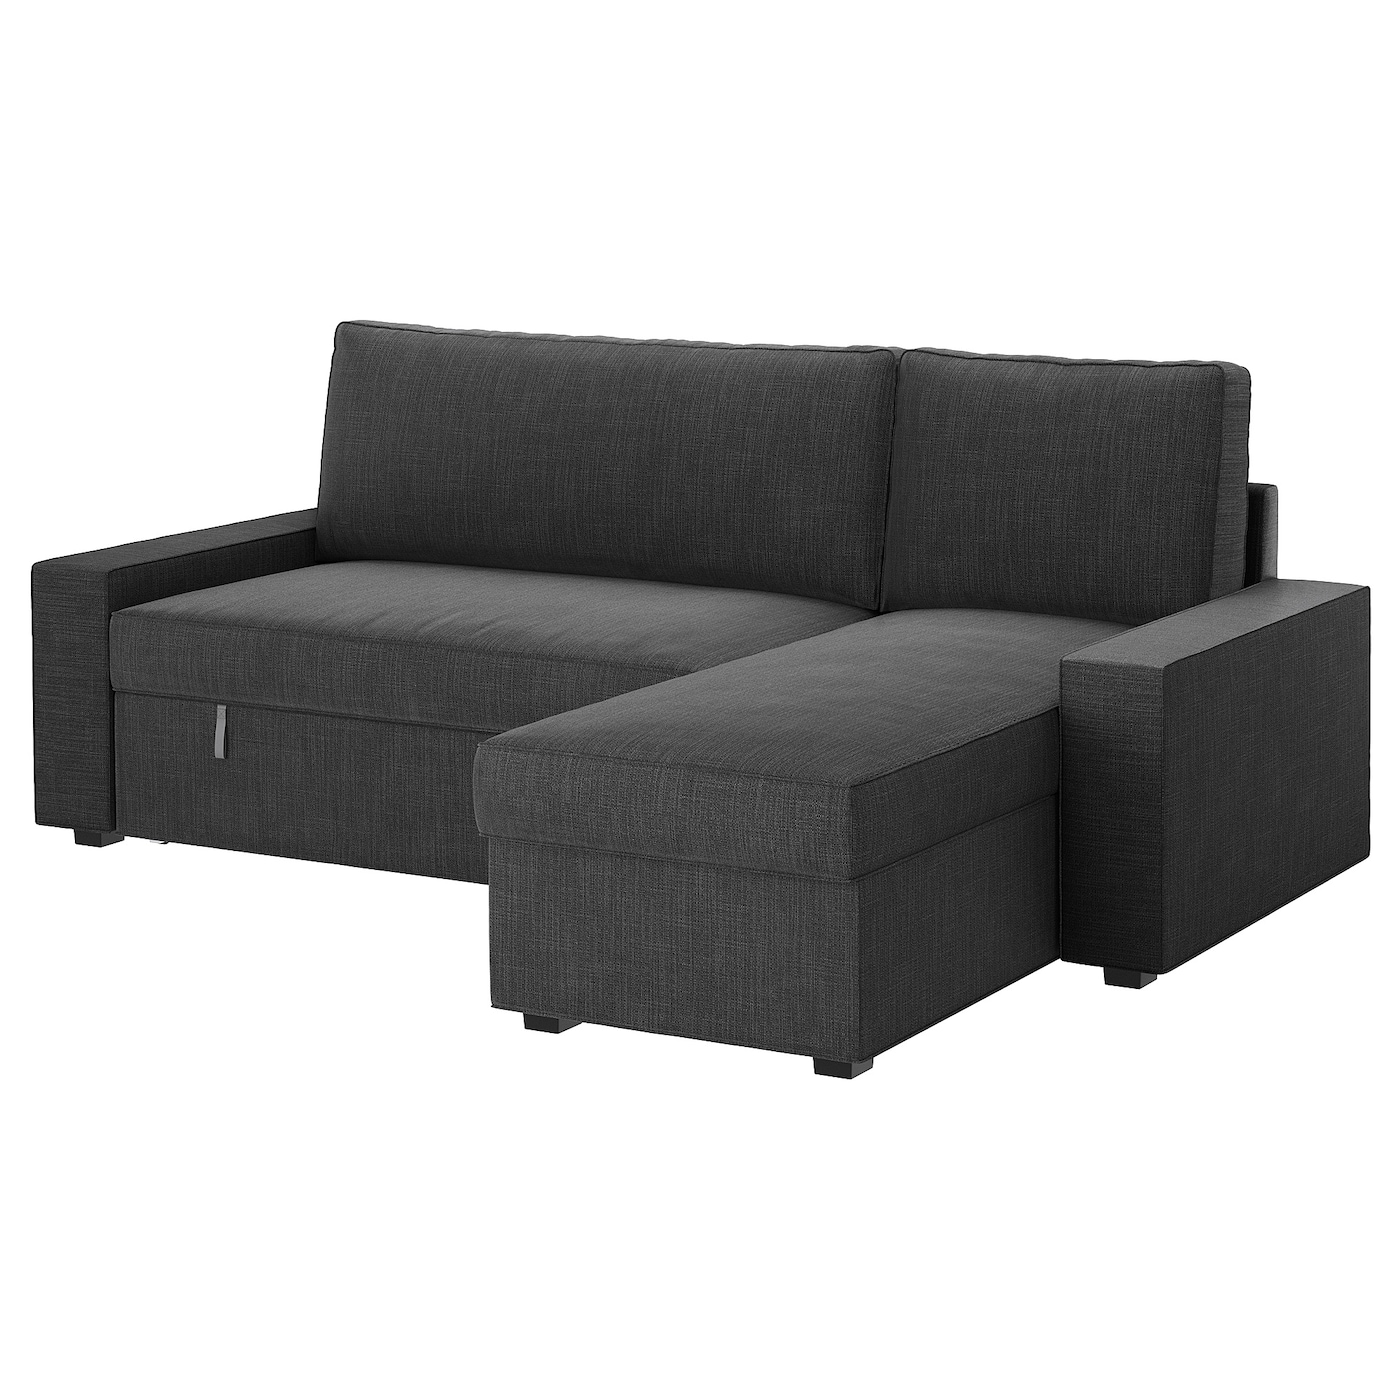 Vilasund sofa bed with chaise longue hillared anthracite ikea - Sofa bed with chaise lounge ...